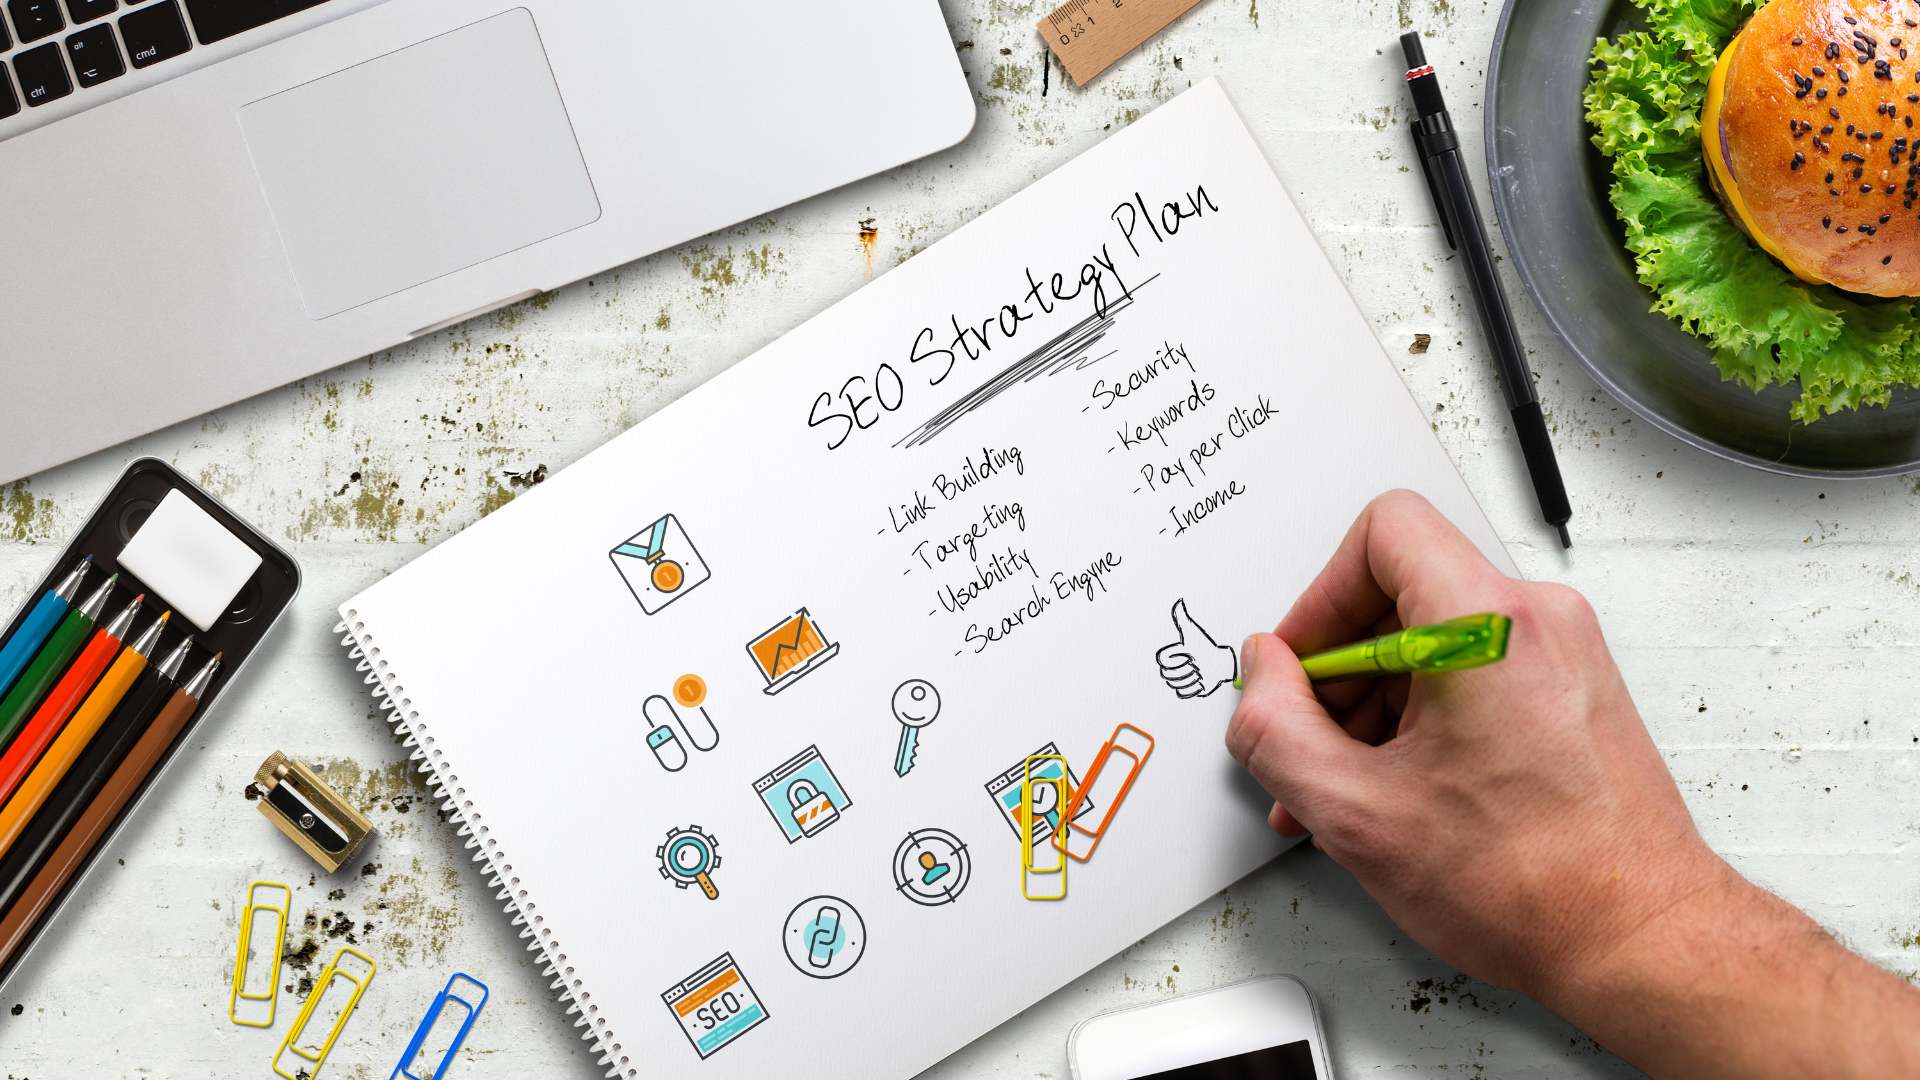 """If you've been looking to generate more sales and have been reading up on effective digital marketing strategies that you want to implement, you will probably have come across the terms inbound marketing and SEO. For those who are not in the """"digital marketing game"""", these terms can get quite confusing! They both help you get more traffic to your website and generate leads… so what's the difference? There is definitely an overlap with inbound marketing and SEO, as there is with various forms of digital marketing, but hopefully this article clears up the difference between inbound marketing and SEO."""